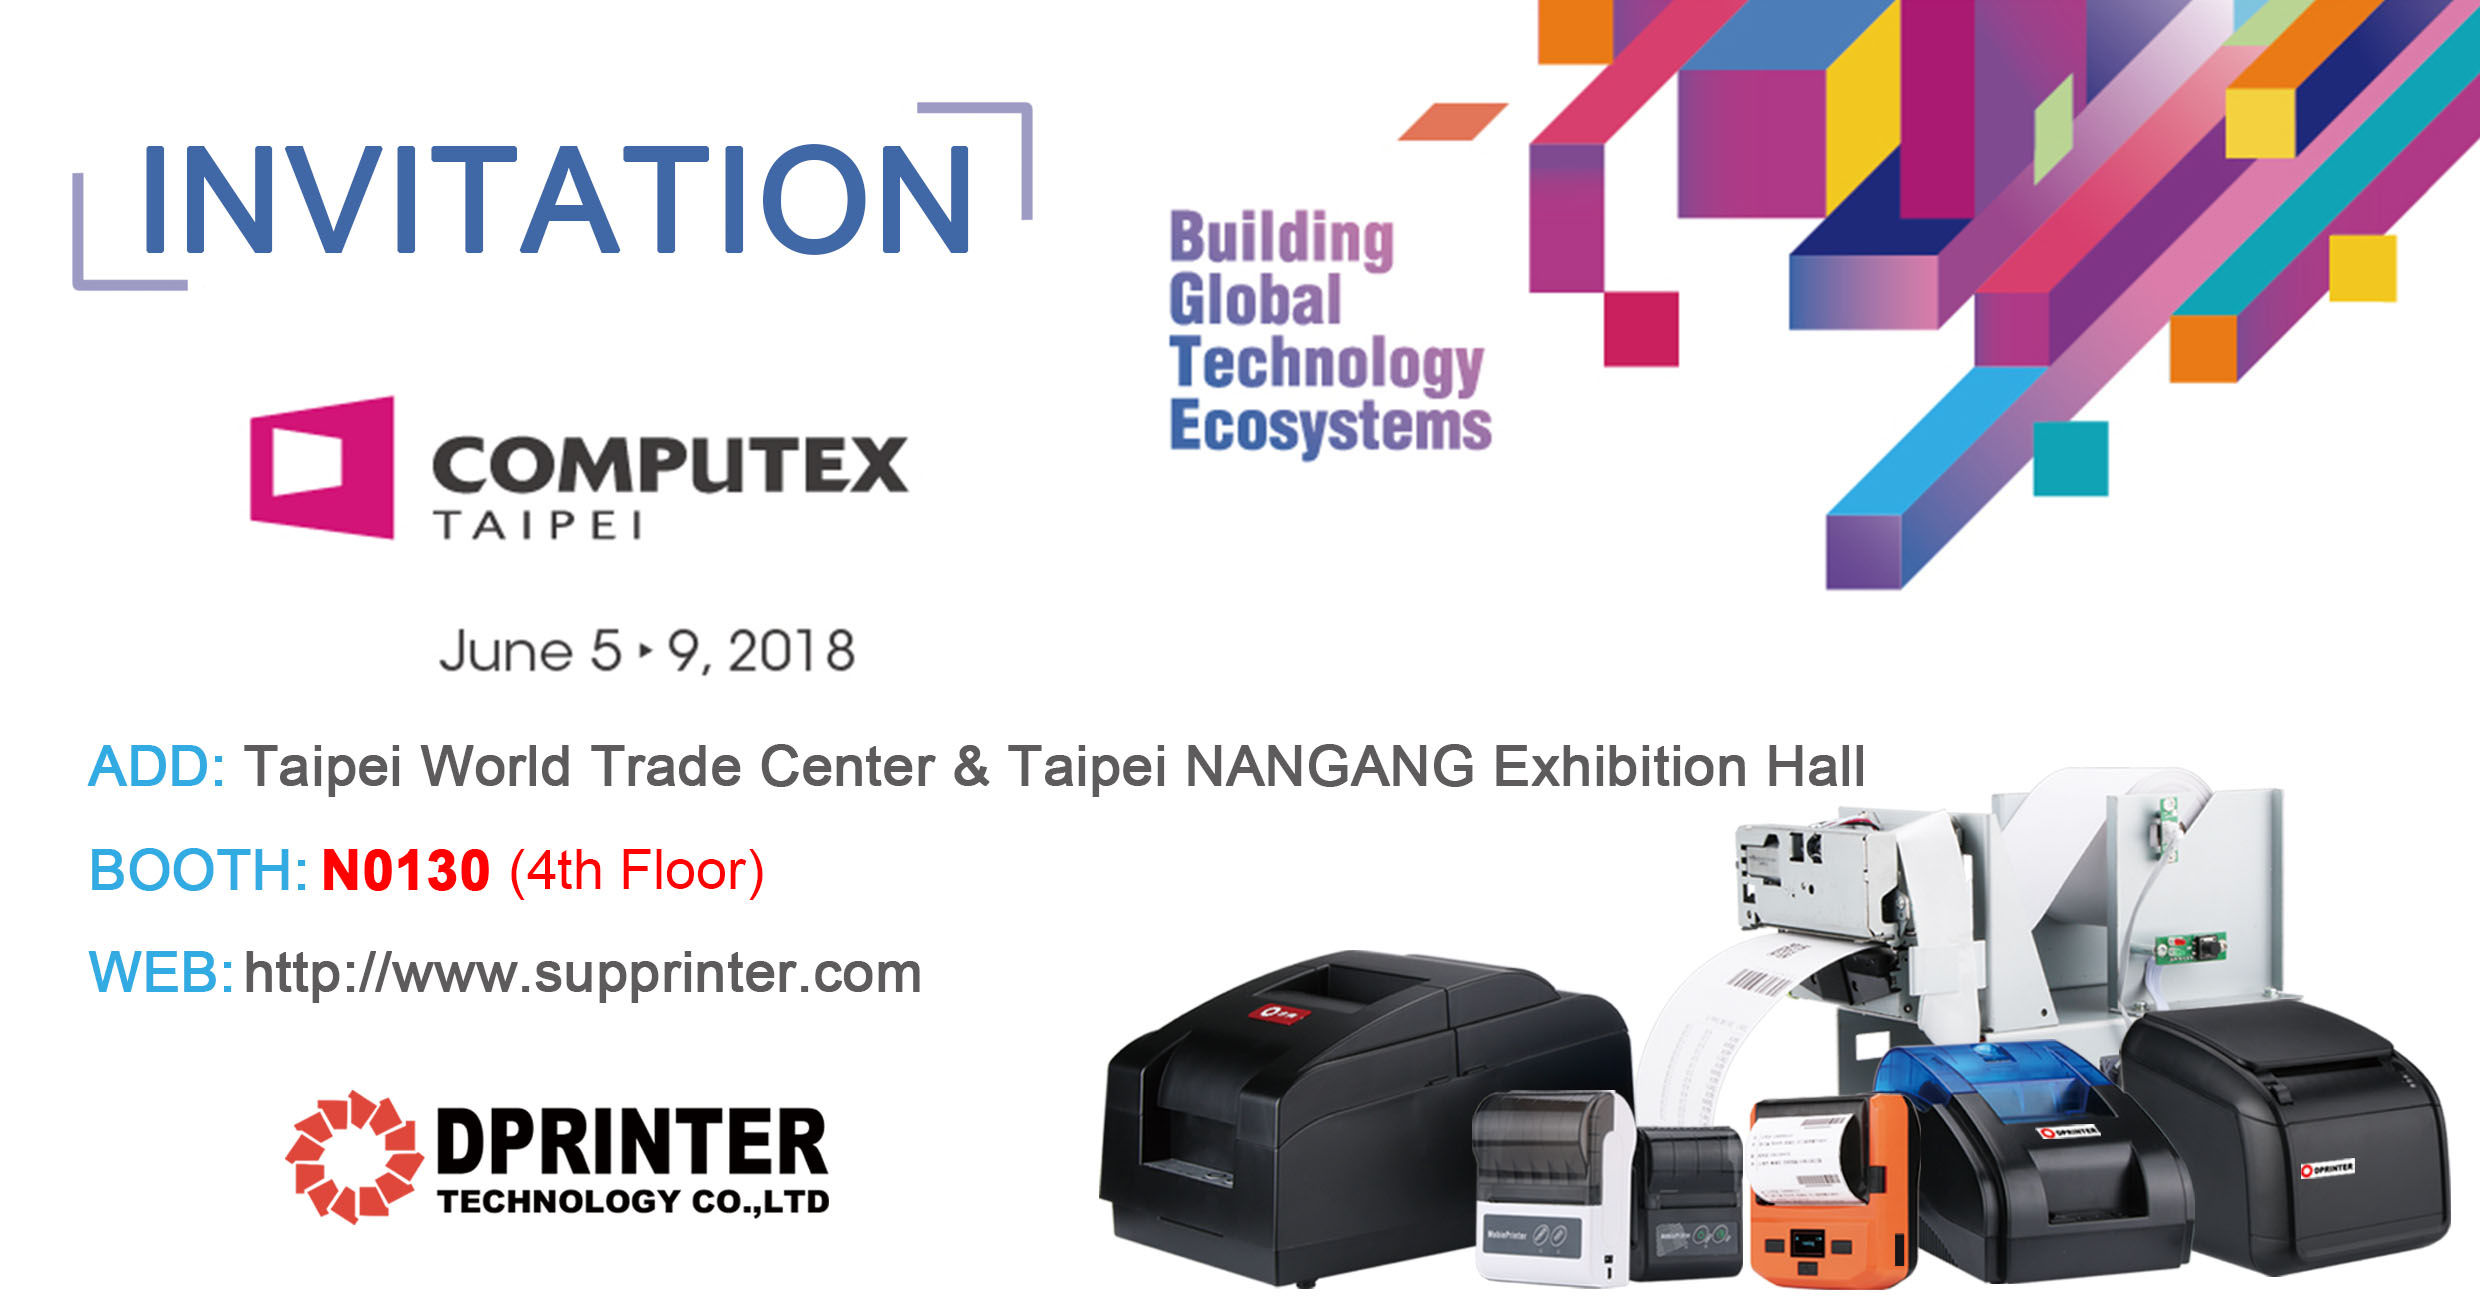 COMPUTEX 2018 in TAIPEI - Dprinter